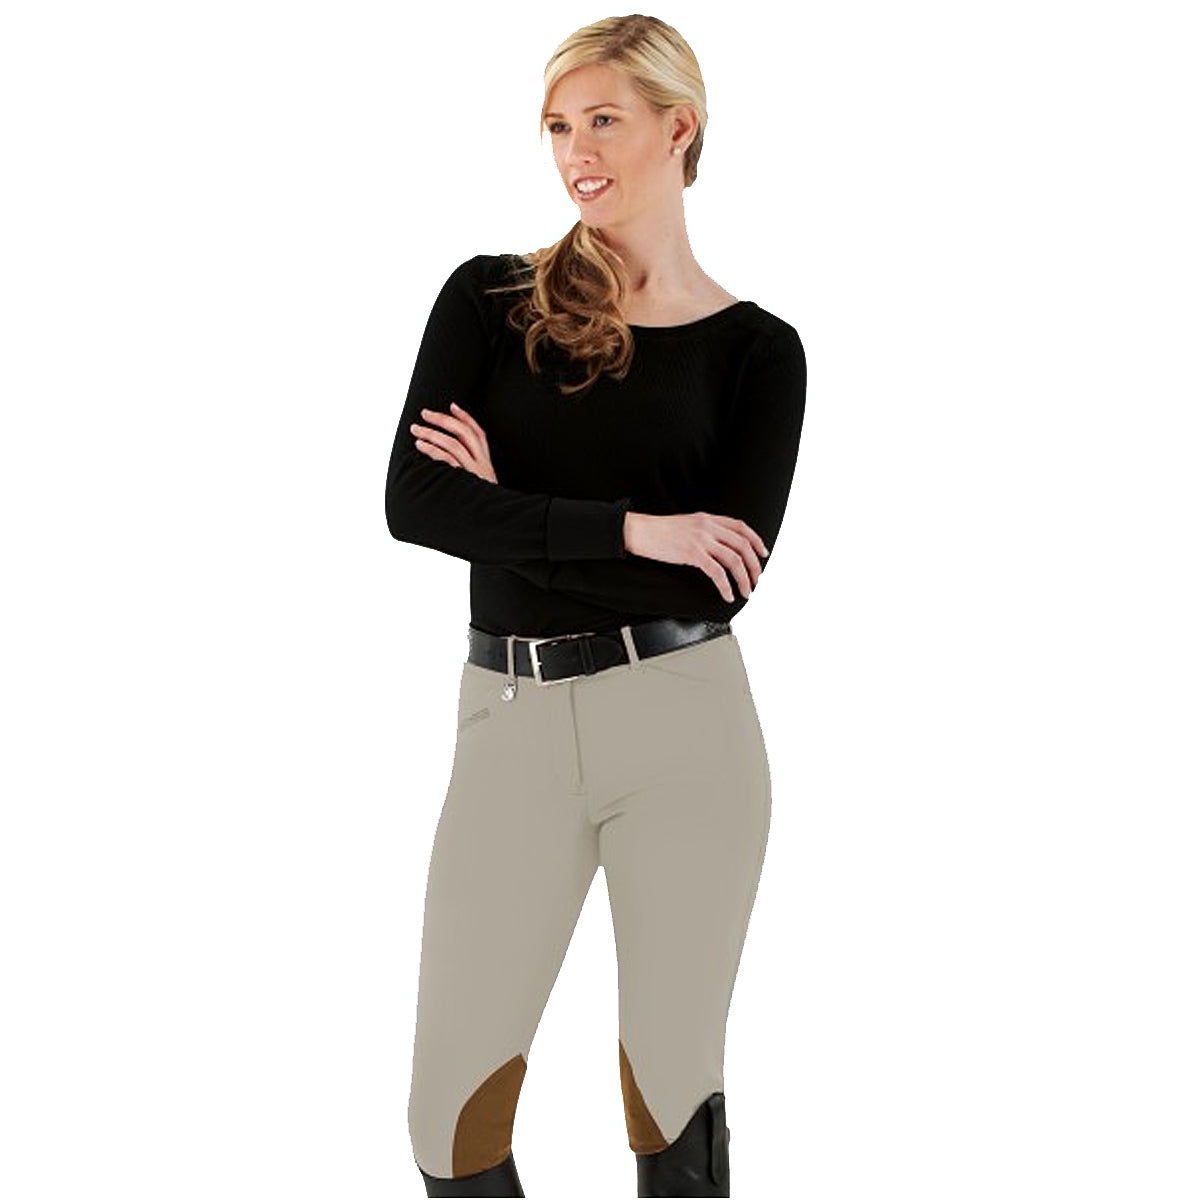 Romfh® Ladies Champion Euro Seat Breeches